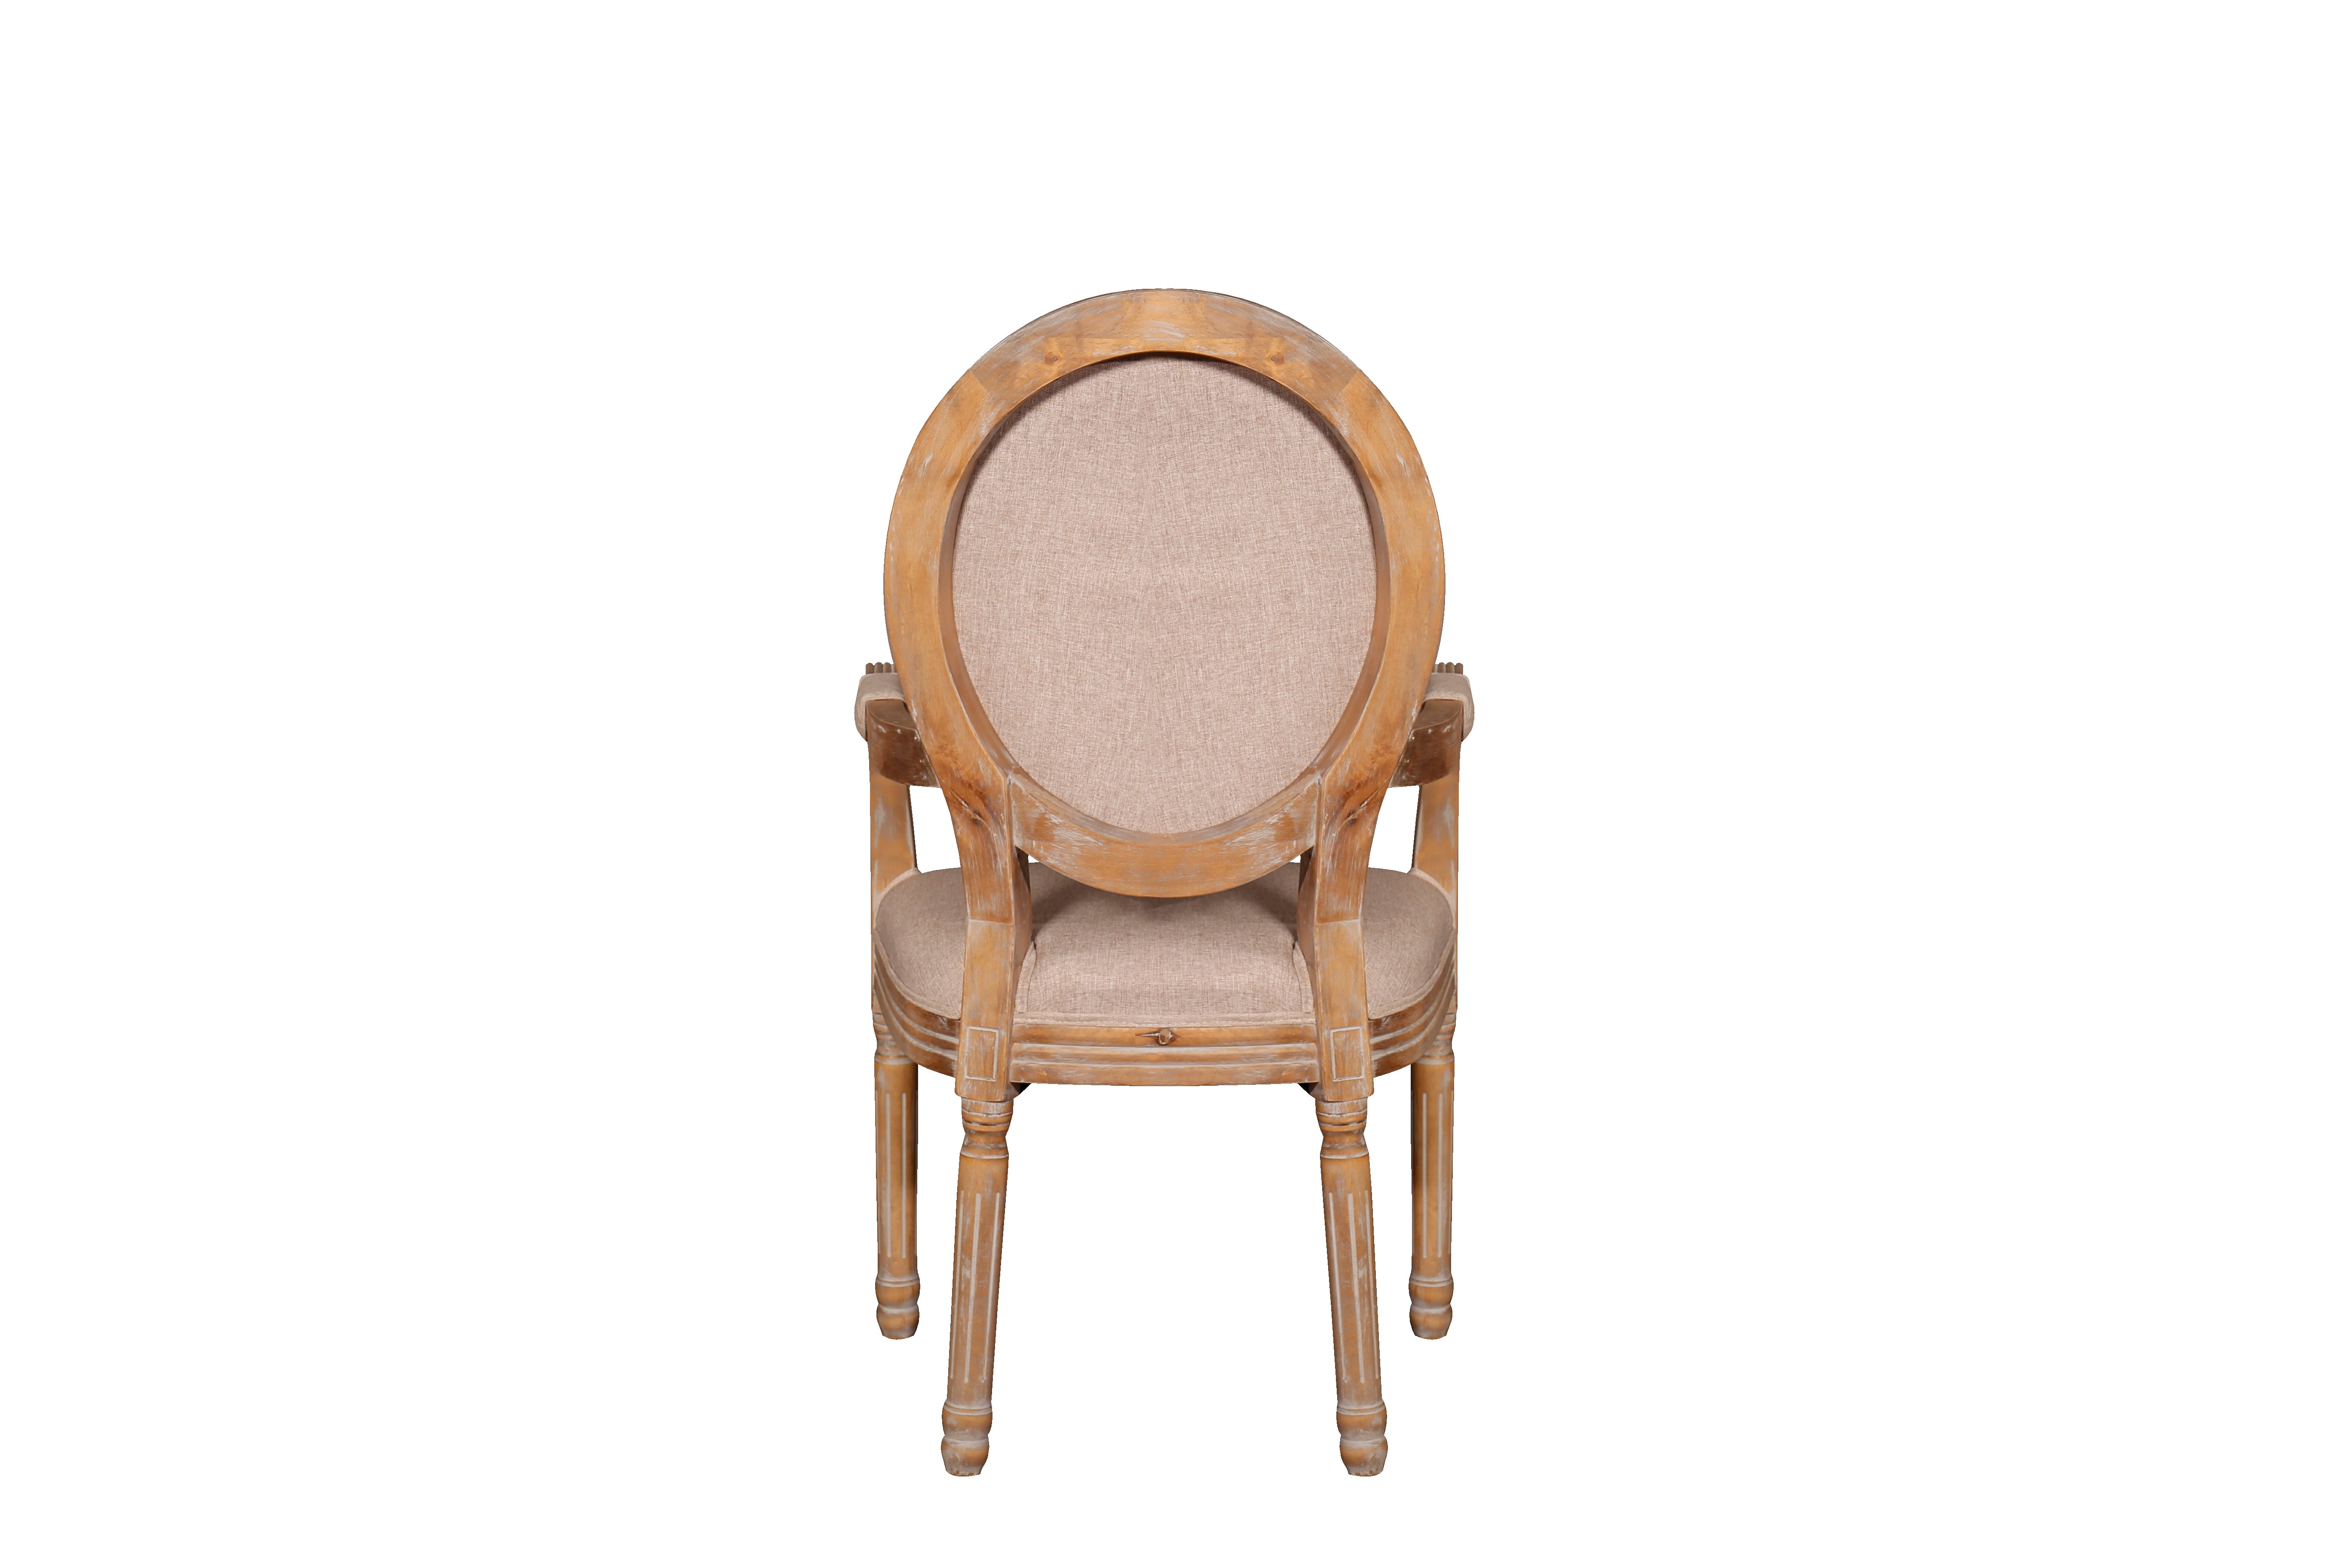 Victoria Rustic Dining Room Chair With Round Back Rest